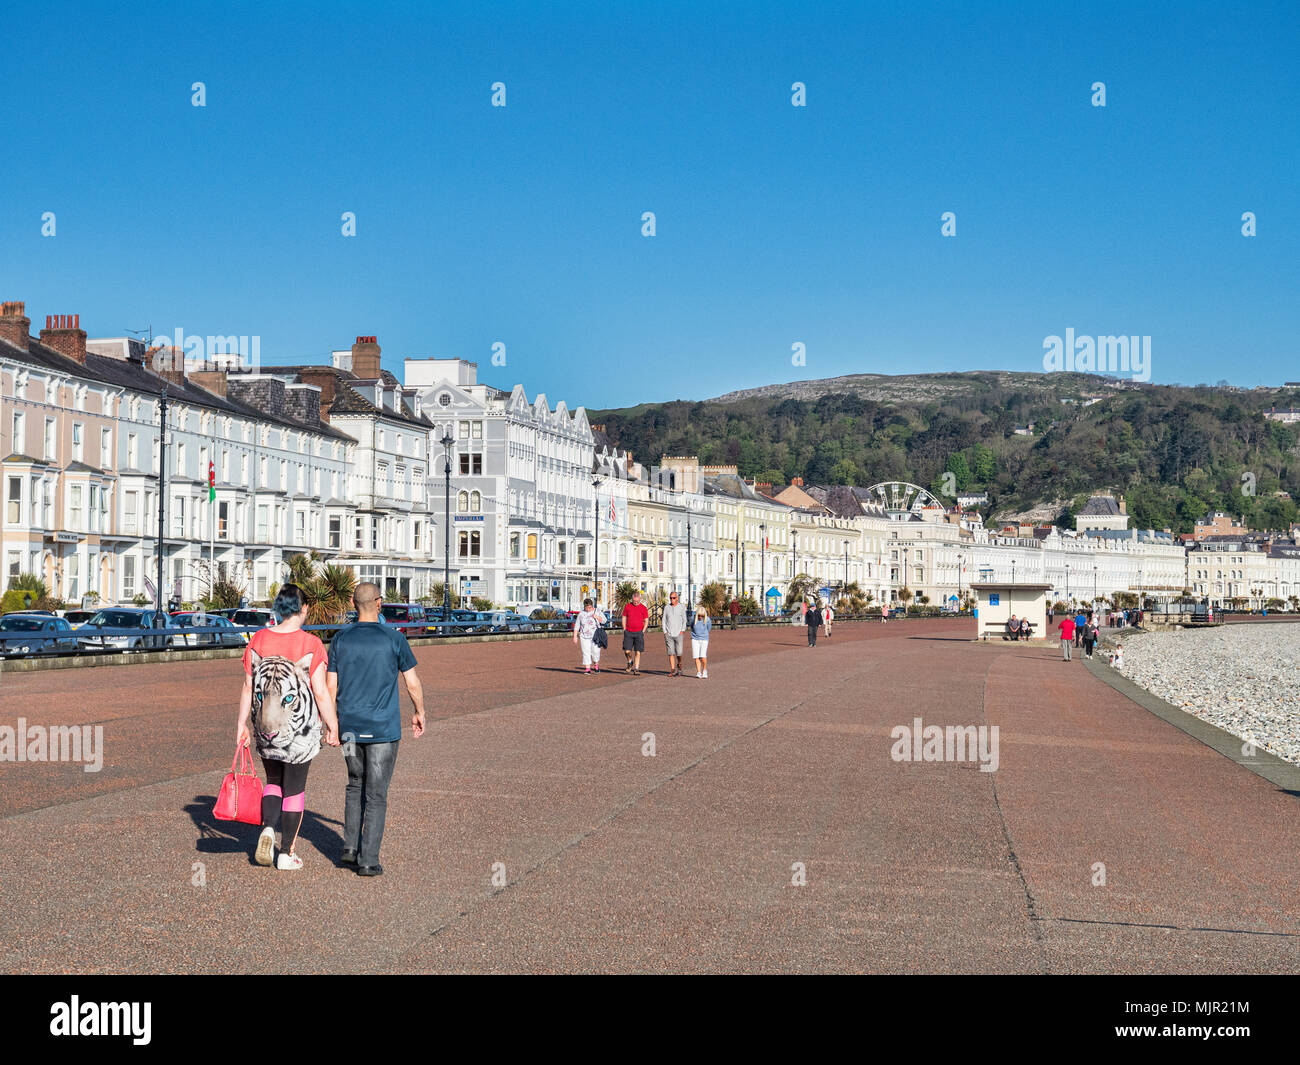 6 May 2018: Llandudno, North Wales - People out on Llandudno Promenade for an early morning stroll on the sunny May Day weekend. - Stock Image